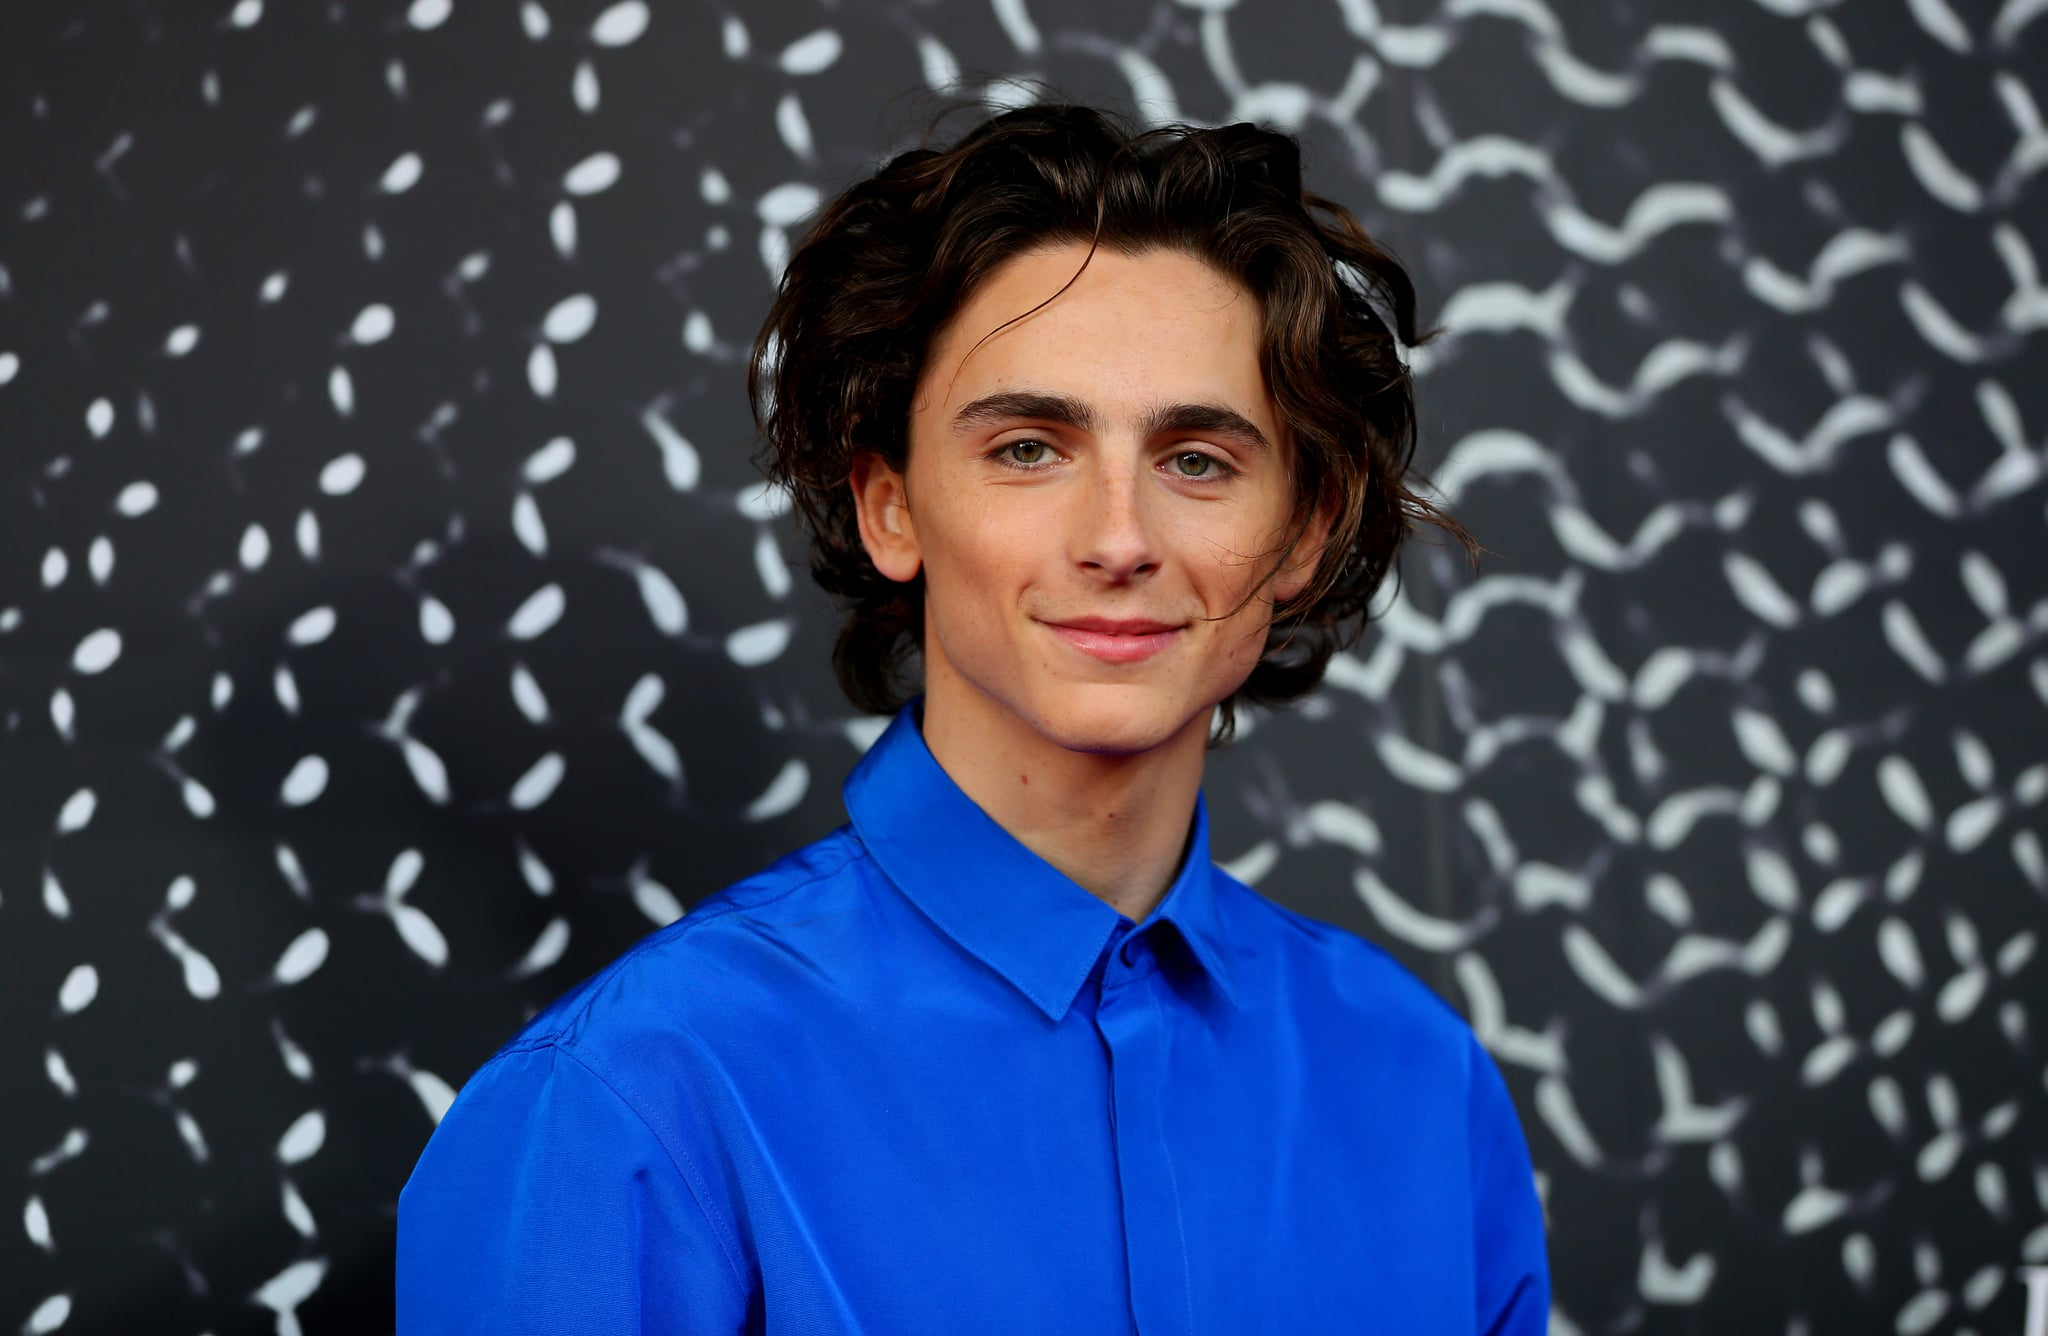 SYDNEY, AUSTRALIA - OCTOBER 10: Timothee Chalamet attends the Australian premiere of THE KING at Ritz Cinema on October 10, 2019 in Sydney, Australia. (Photo by Don Arnold/WireImage)